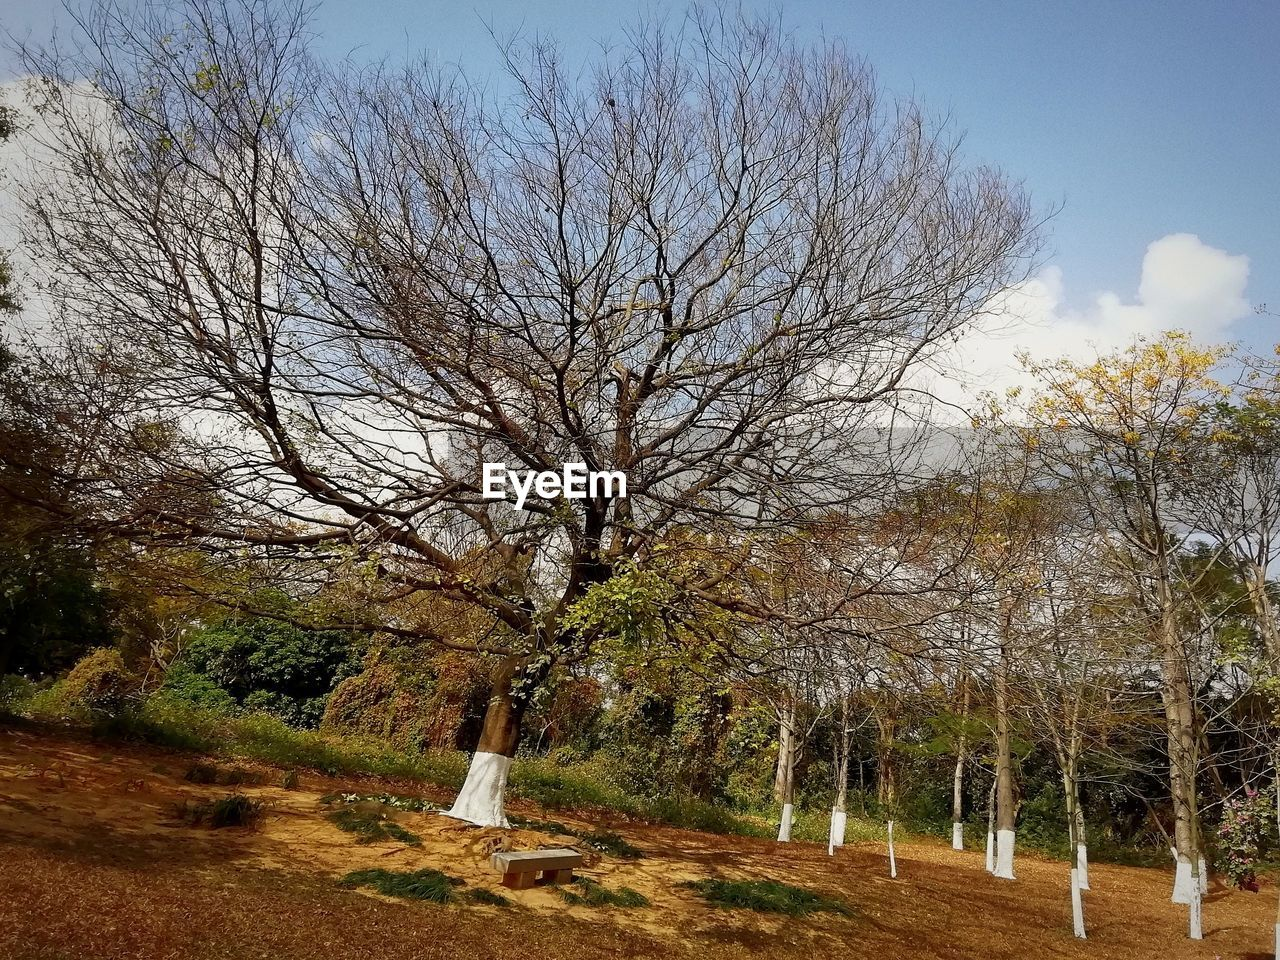 tree, plant, bare tree, sky, nature, land, no people, branch, tranquility, day, field, tranquil scene, beauty in nature, autumn, landscape, non-urban scene, growth, environment, scenics - nature, outdoors, change, fall